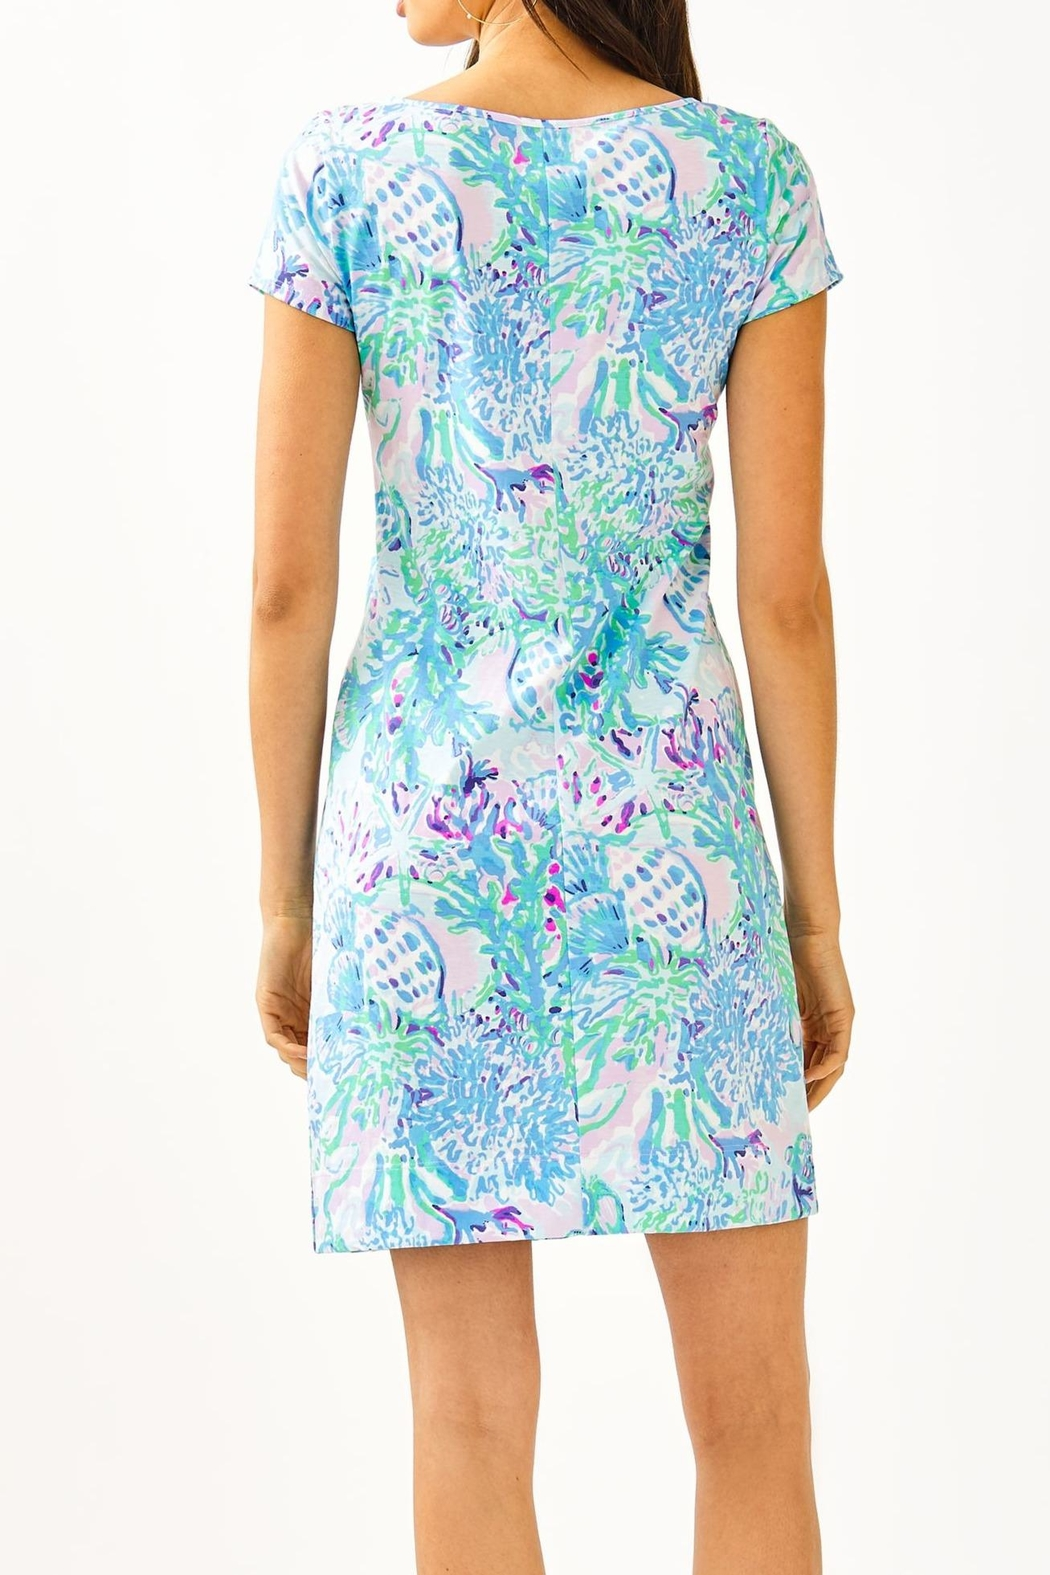 Lilly Pulitzer Marlowe T-Shirt Dress - Front Full Image